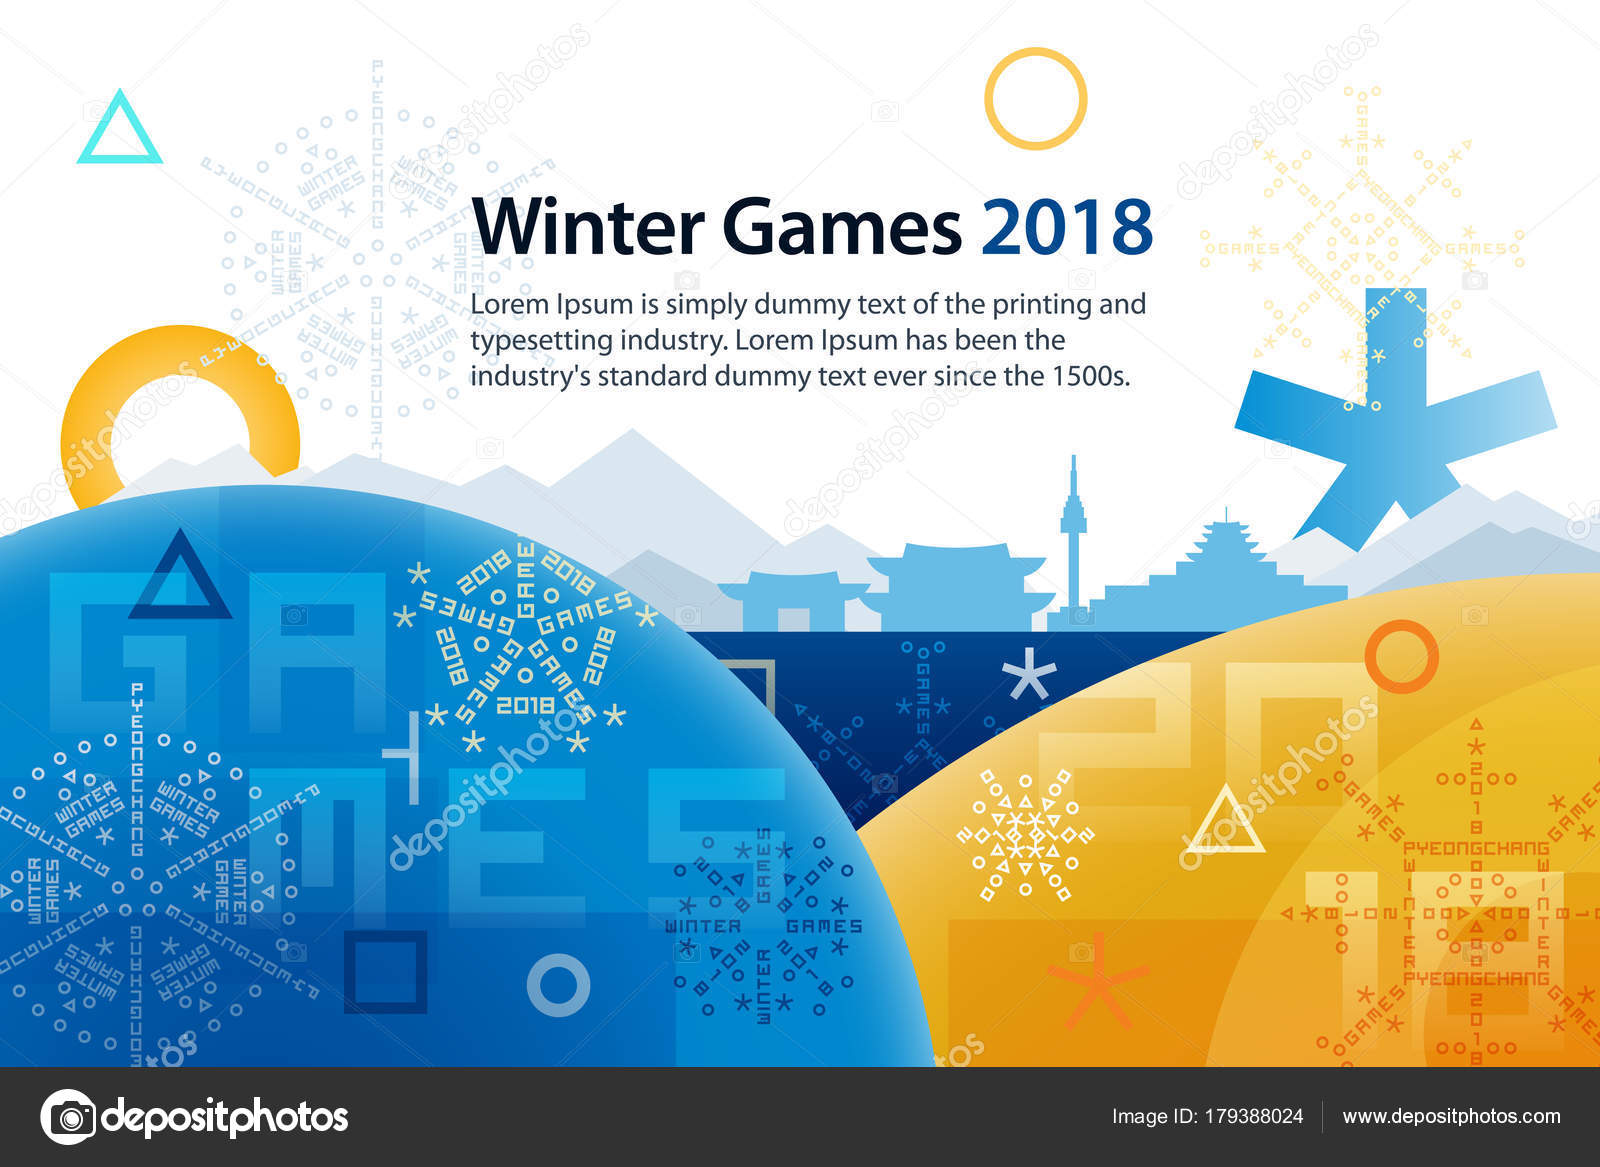 Sports competitions in south korea february 2018 symbols of sports competitions in south korea february 2018 symbols of sports competitions colorful abstract biocorpaavc Choice Image